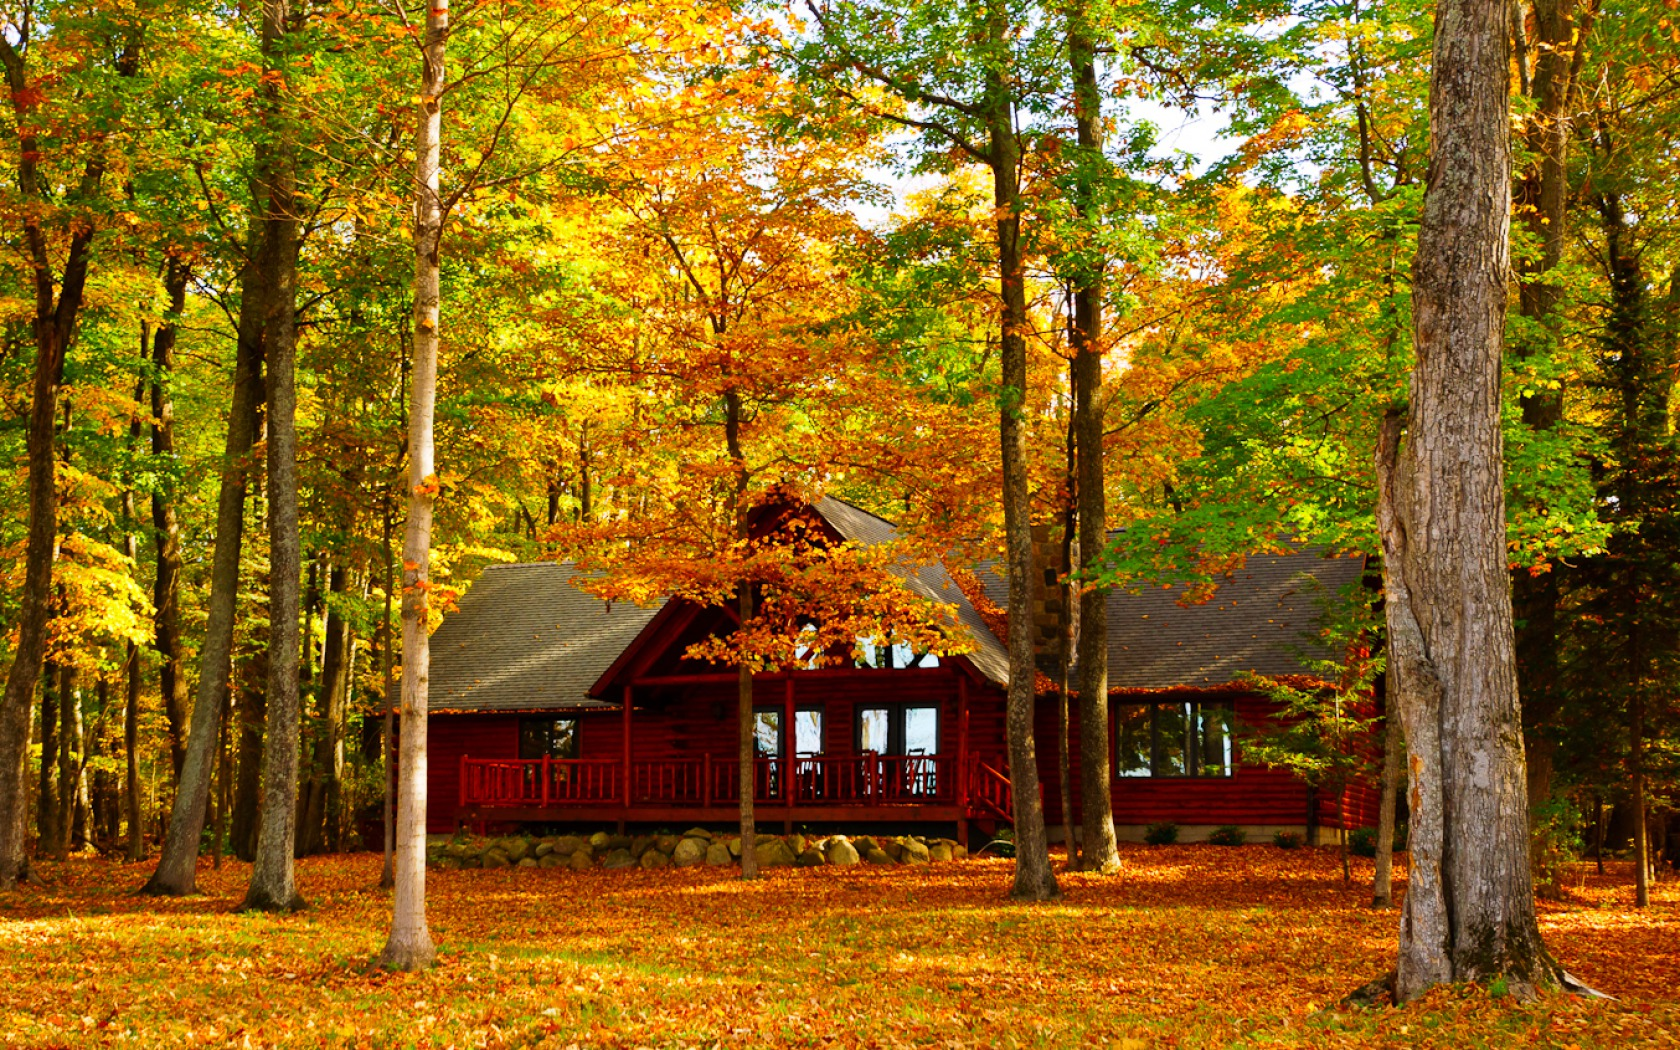 Fall Foliage Wallpaper For Iphone House In Autumn Forest Fond D 233 Cran And Arri 232 Re Plan